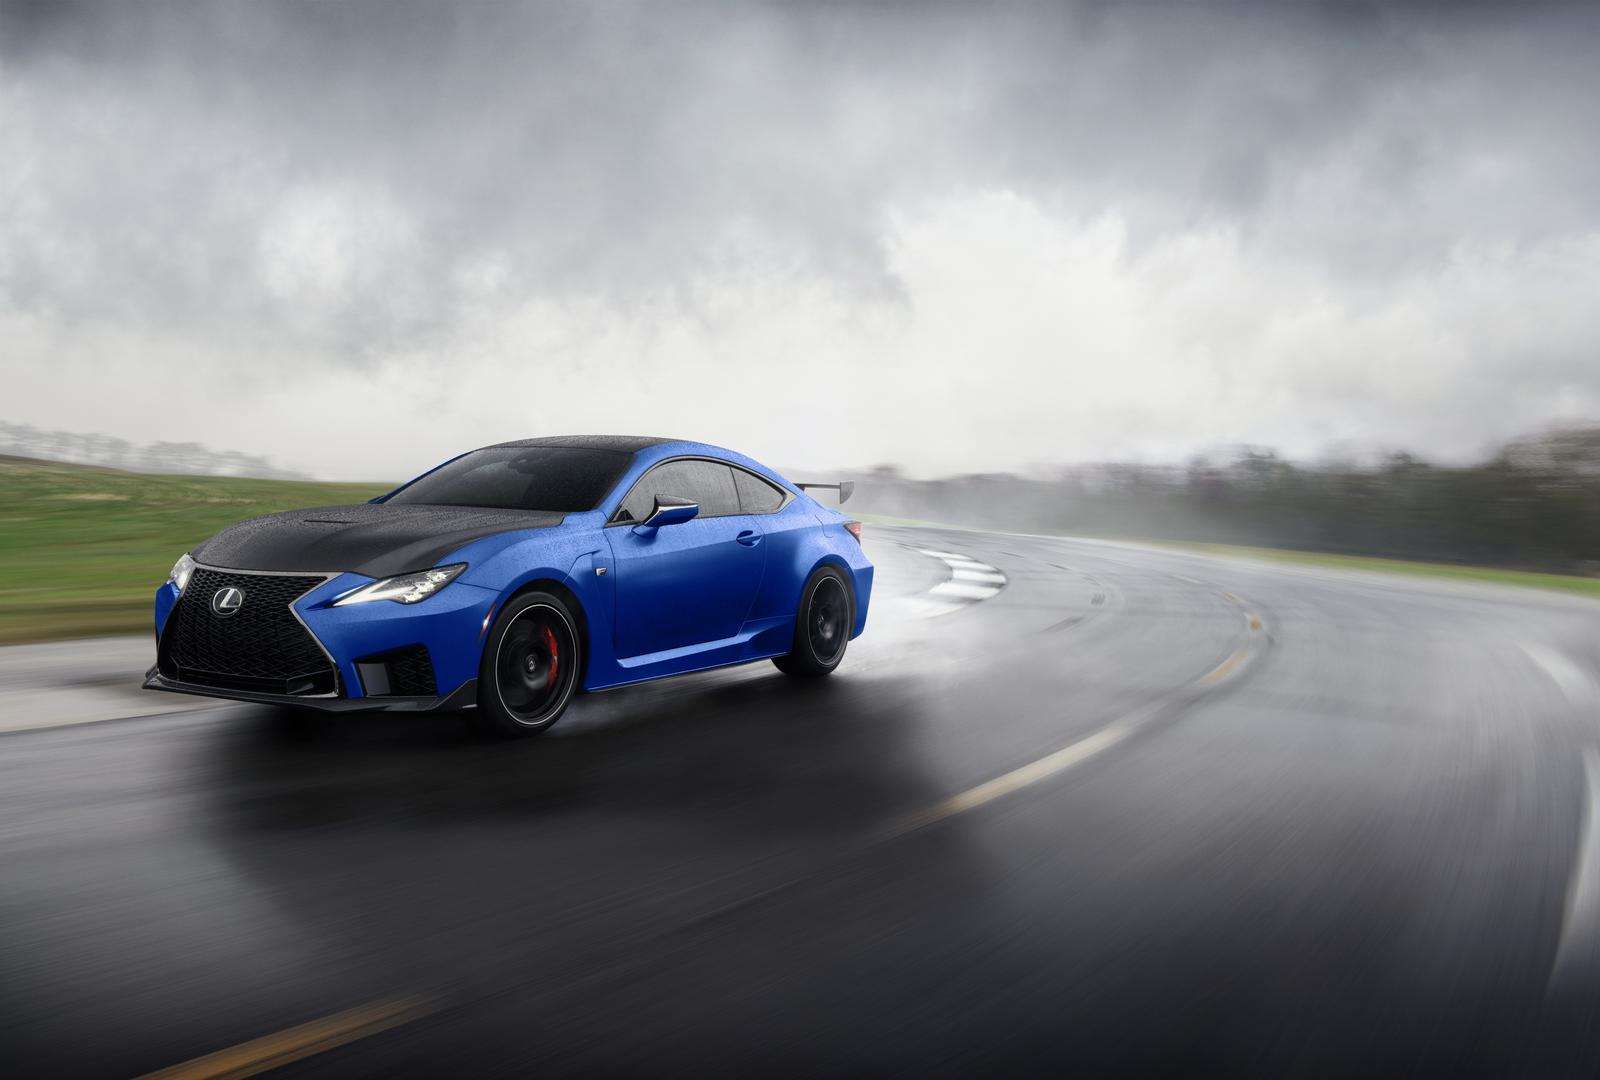 Lexus RC F Gets Special Edition to Keep Things Alive – Tough Times for a NA V8